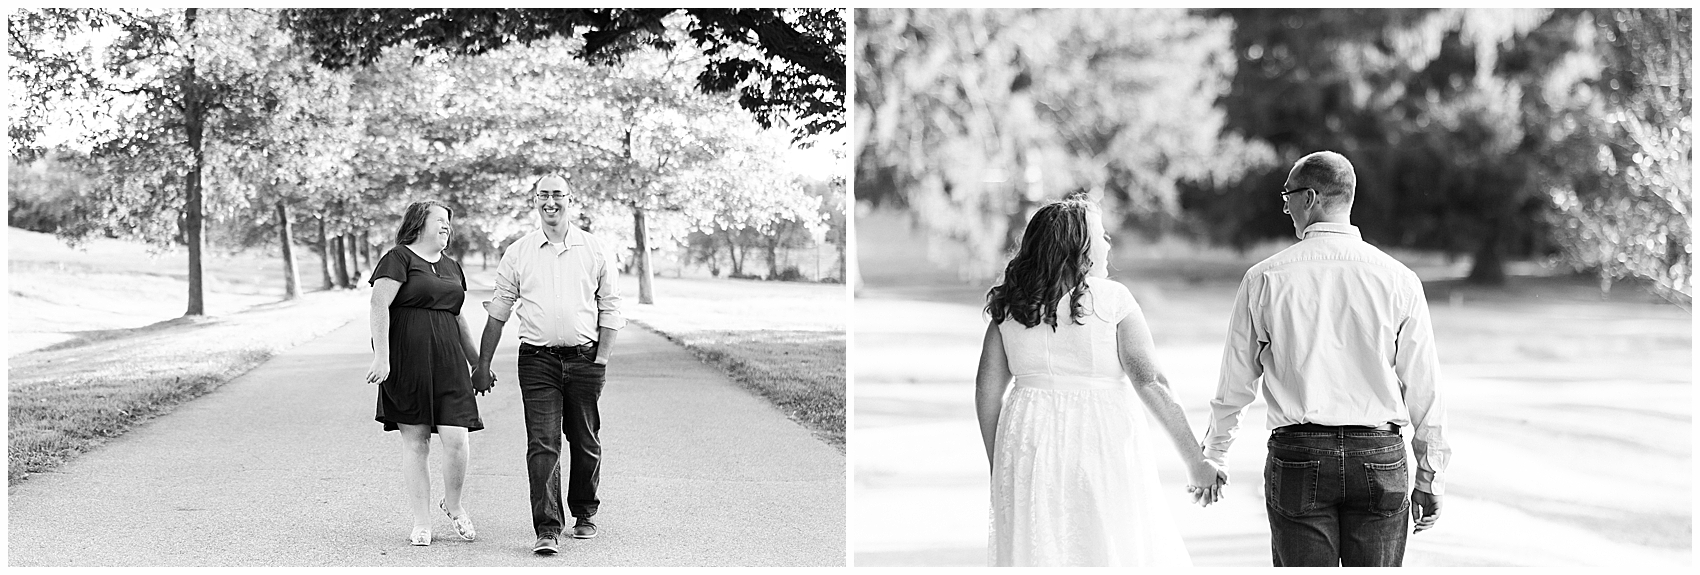 chester-county-pa-engagement-photographer6.jpg